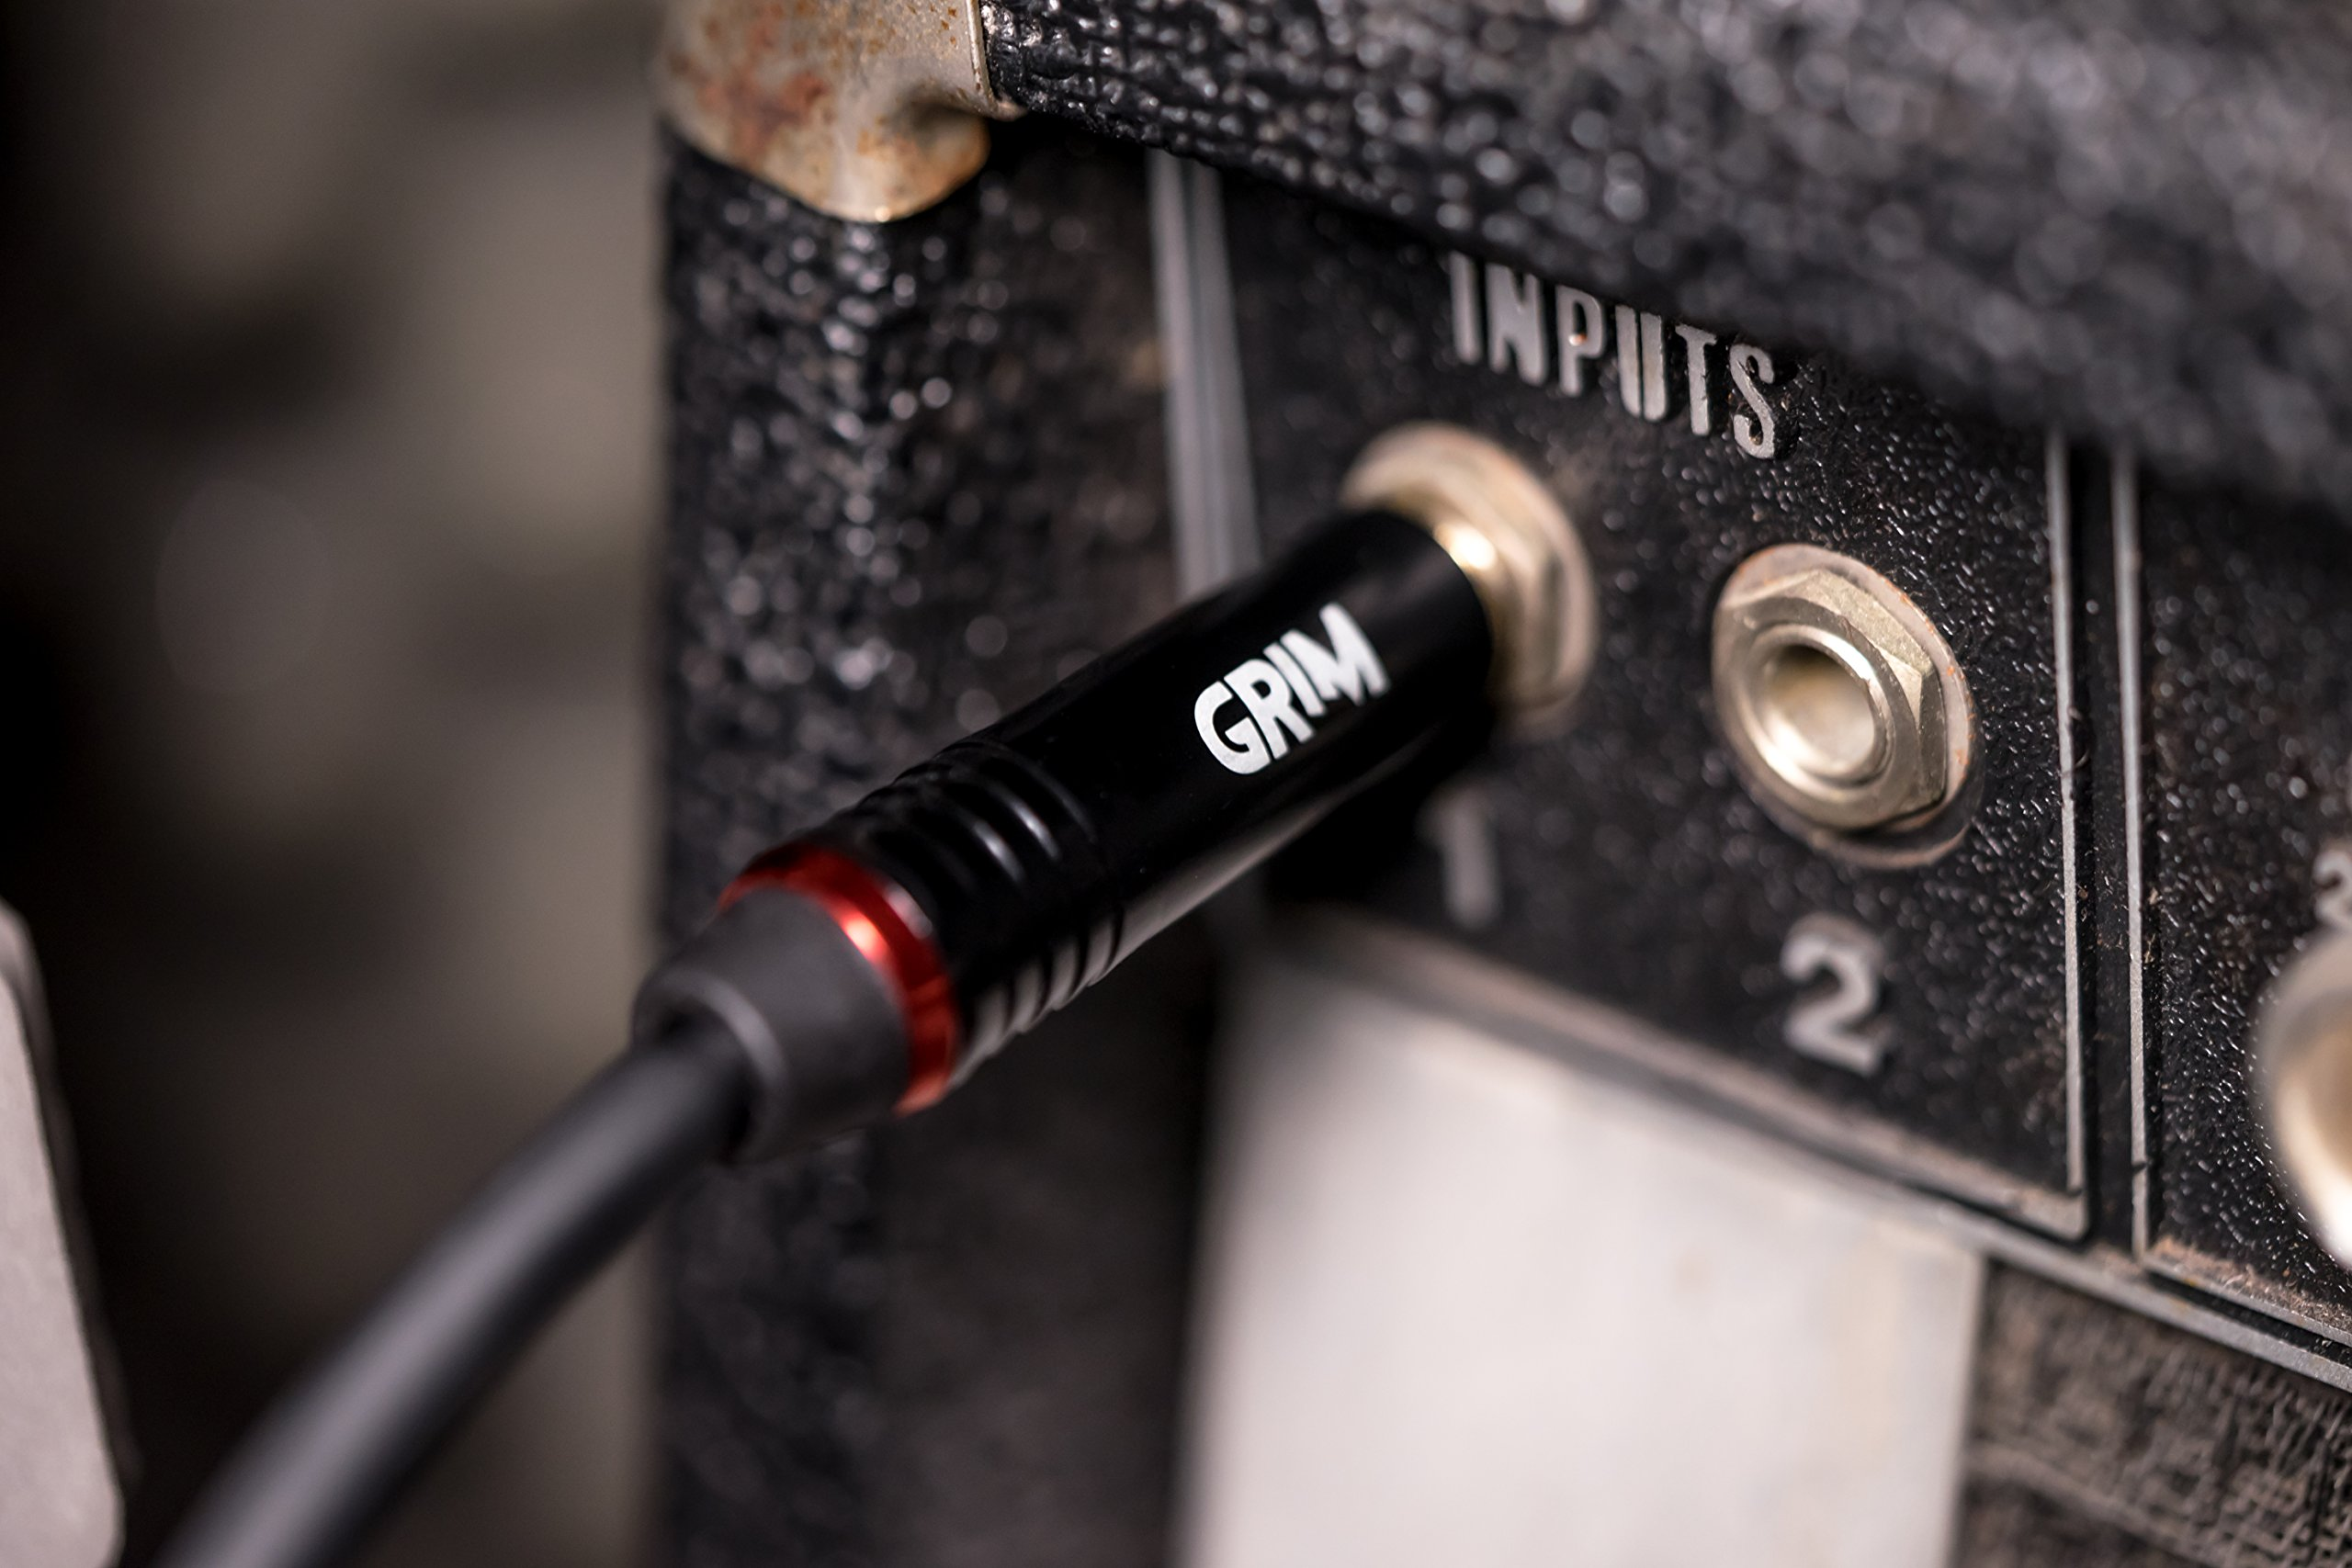 Grim Electronics Guitar Cable 10 ft. Premium Durable Instrument Cable For Guitar, Bass, Keyboard, Ukulele, Recording, Performance, Amp Cord & More - Professional 1/4 Inch 24kt Gold Connectors by Grim Electronics (Image #6)